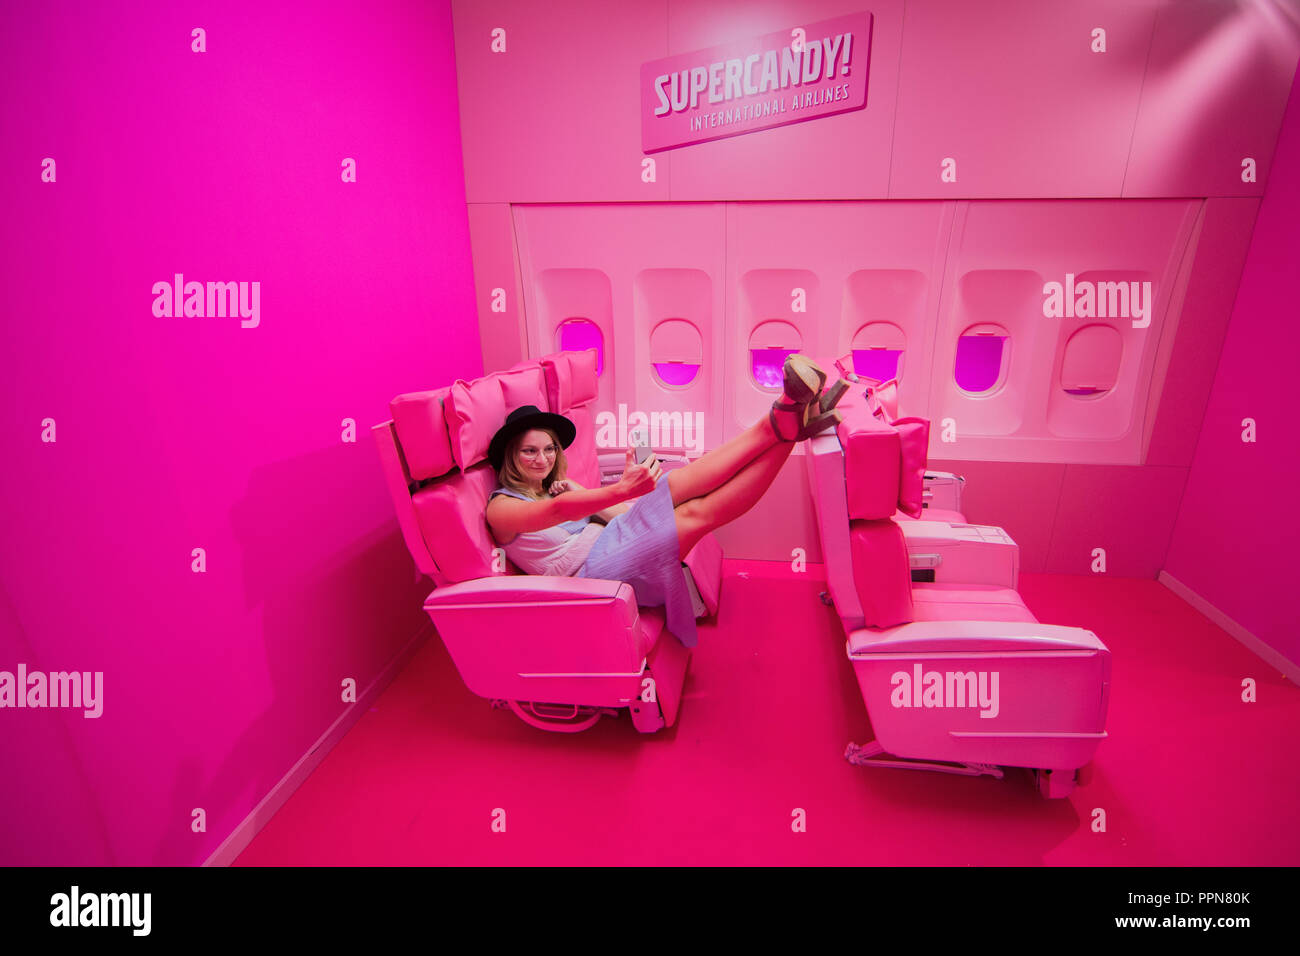 Supercandy museum